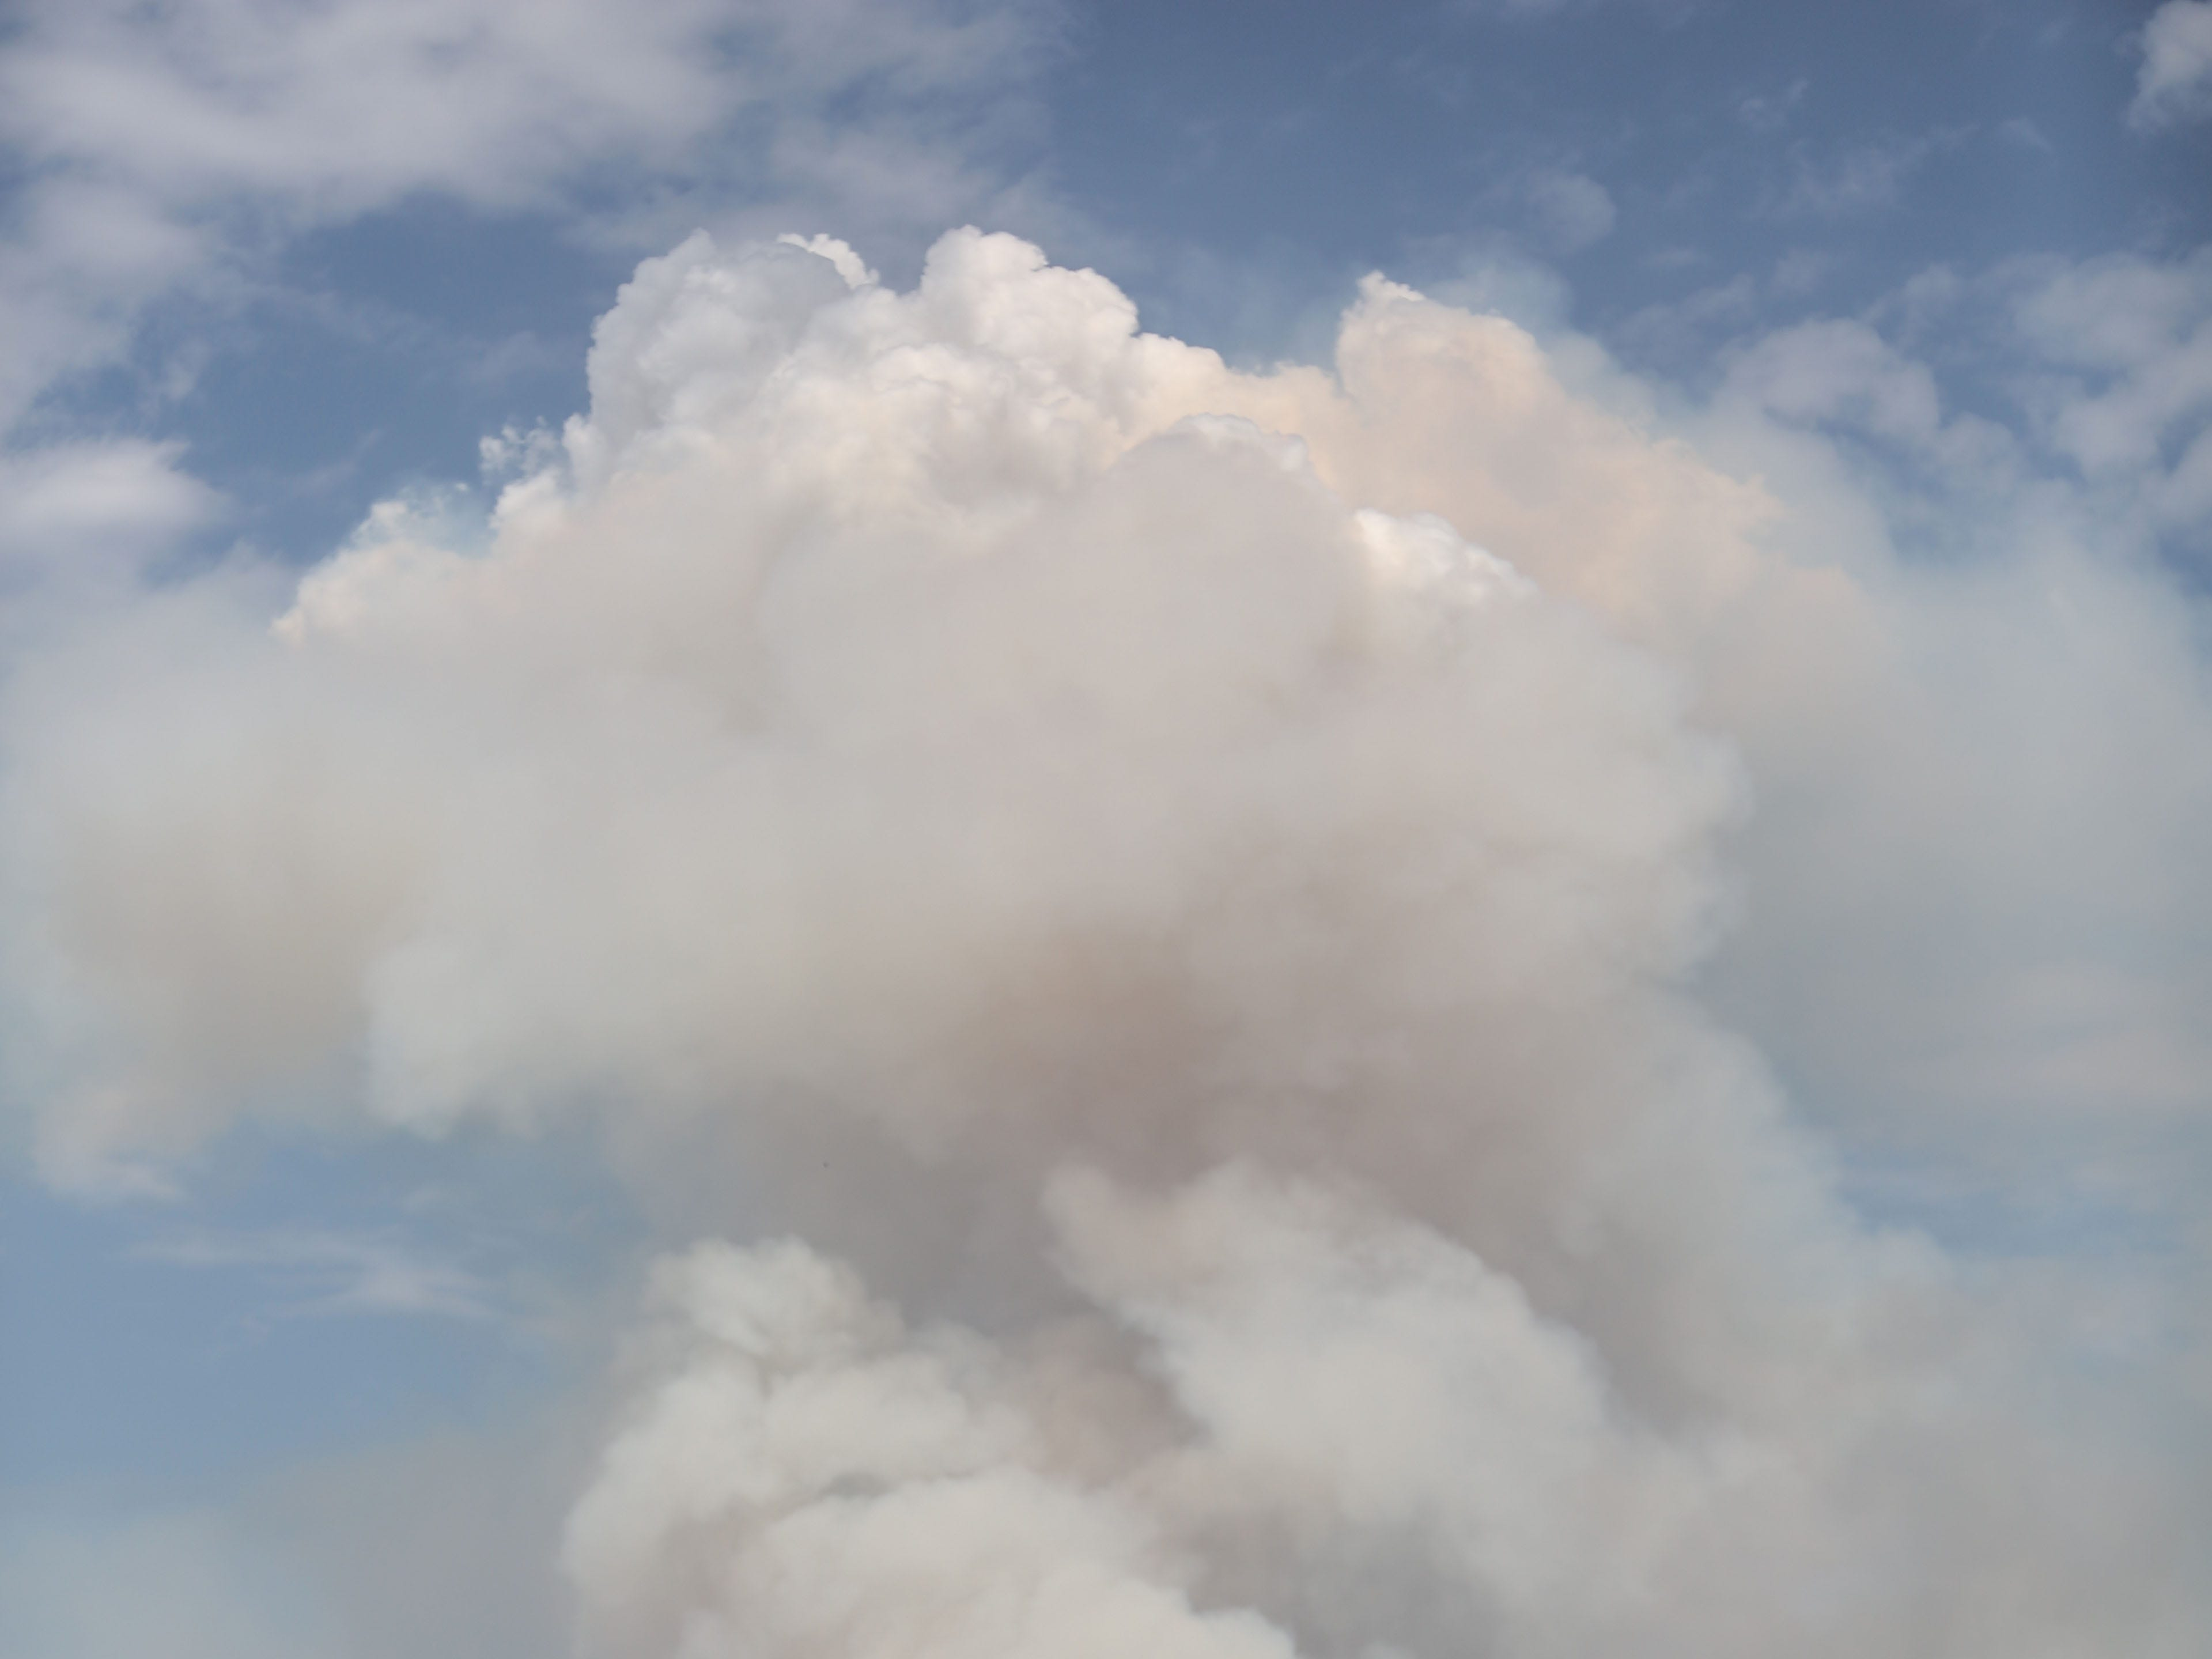 The Holy Fire continues to burn in the Cleveland National Forest on Thursday, August 9, 2018.